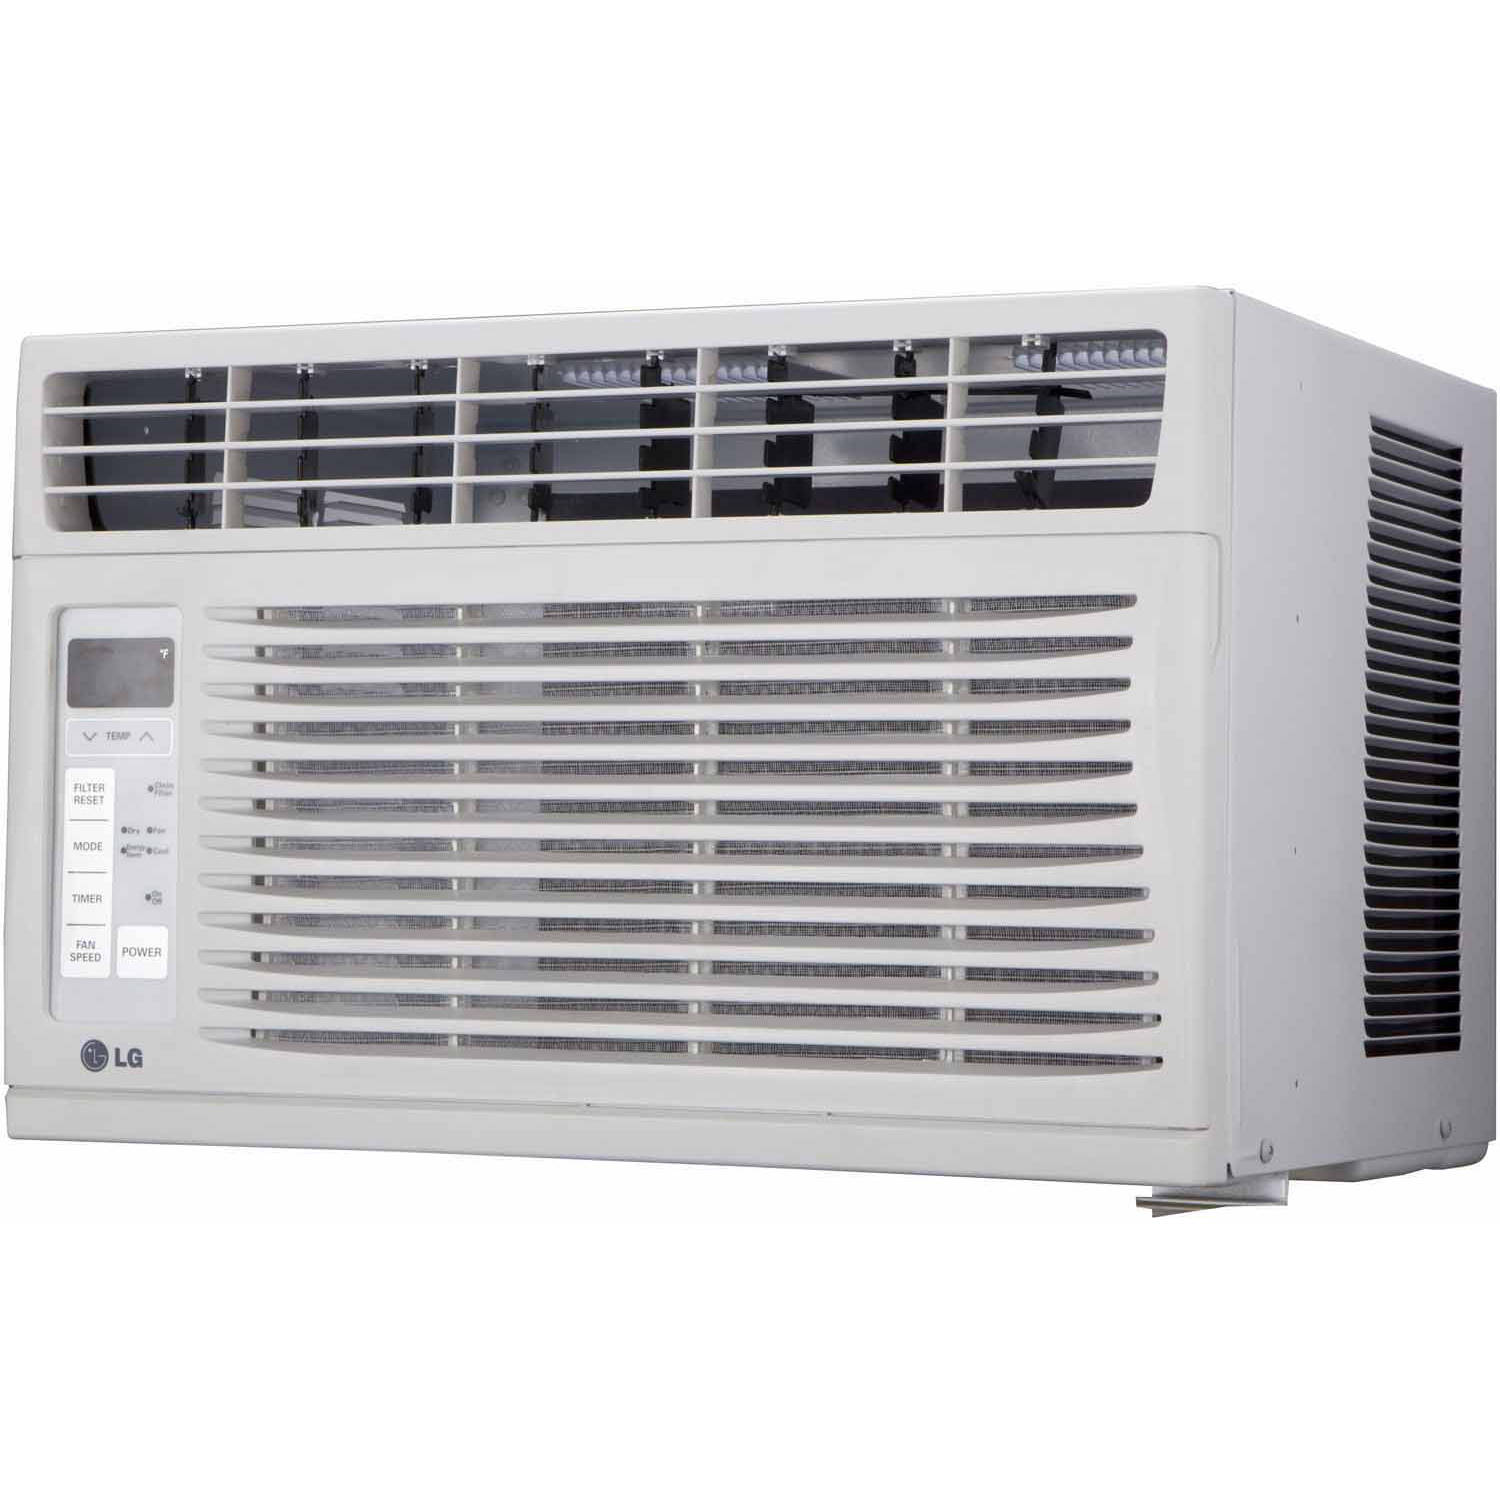 LG Electronics LW6015ER Energy Efficient 6,000-BTU 115V Window-Mounted Air Conditioner with Remote Control